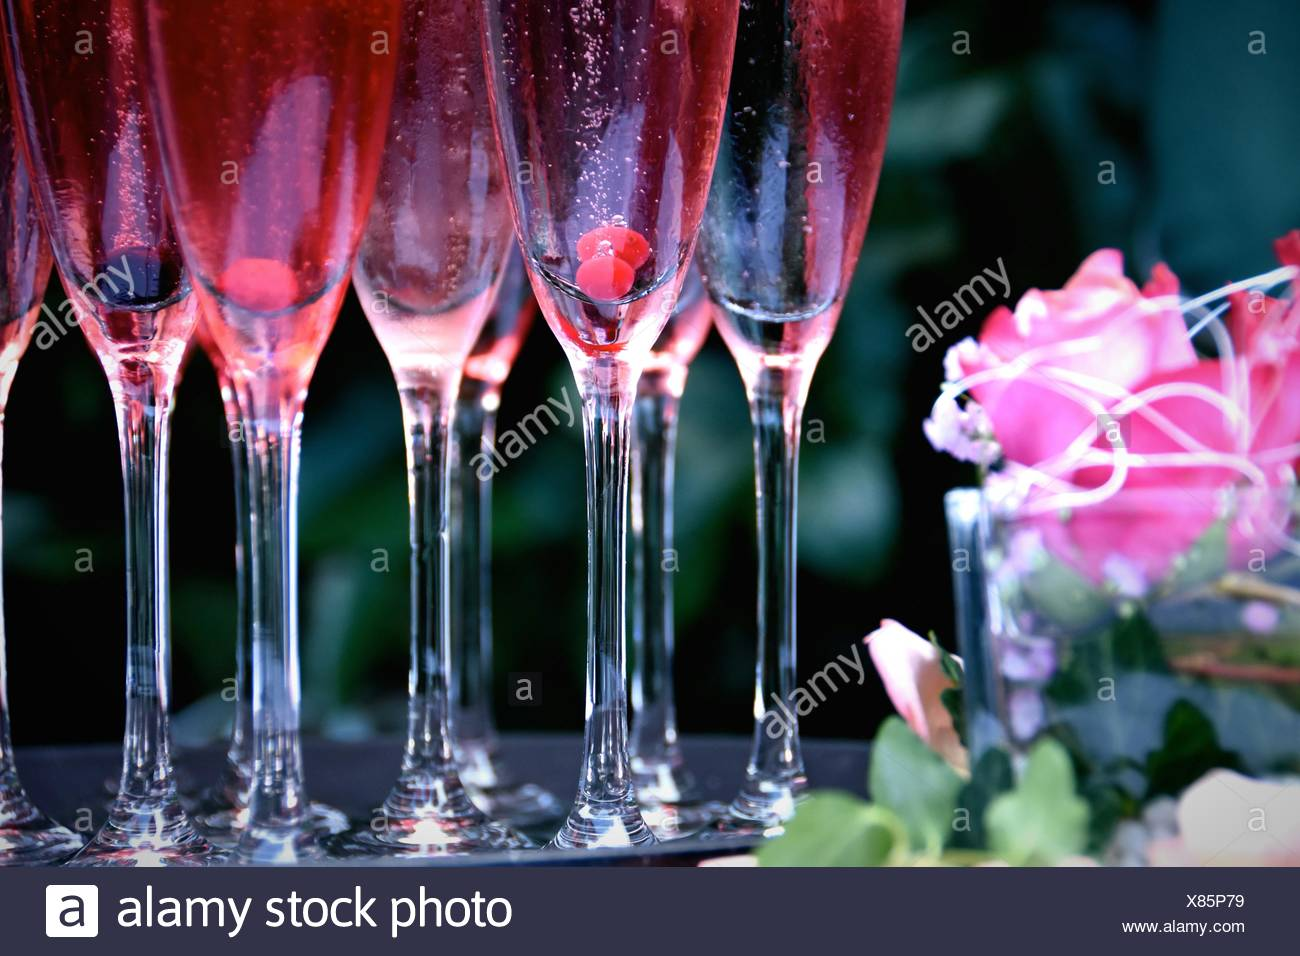 Cocktails In Flutes On Table Stock Photo